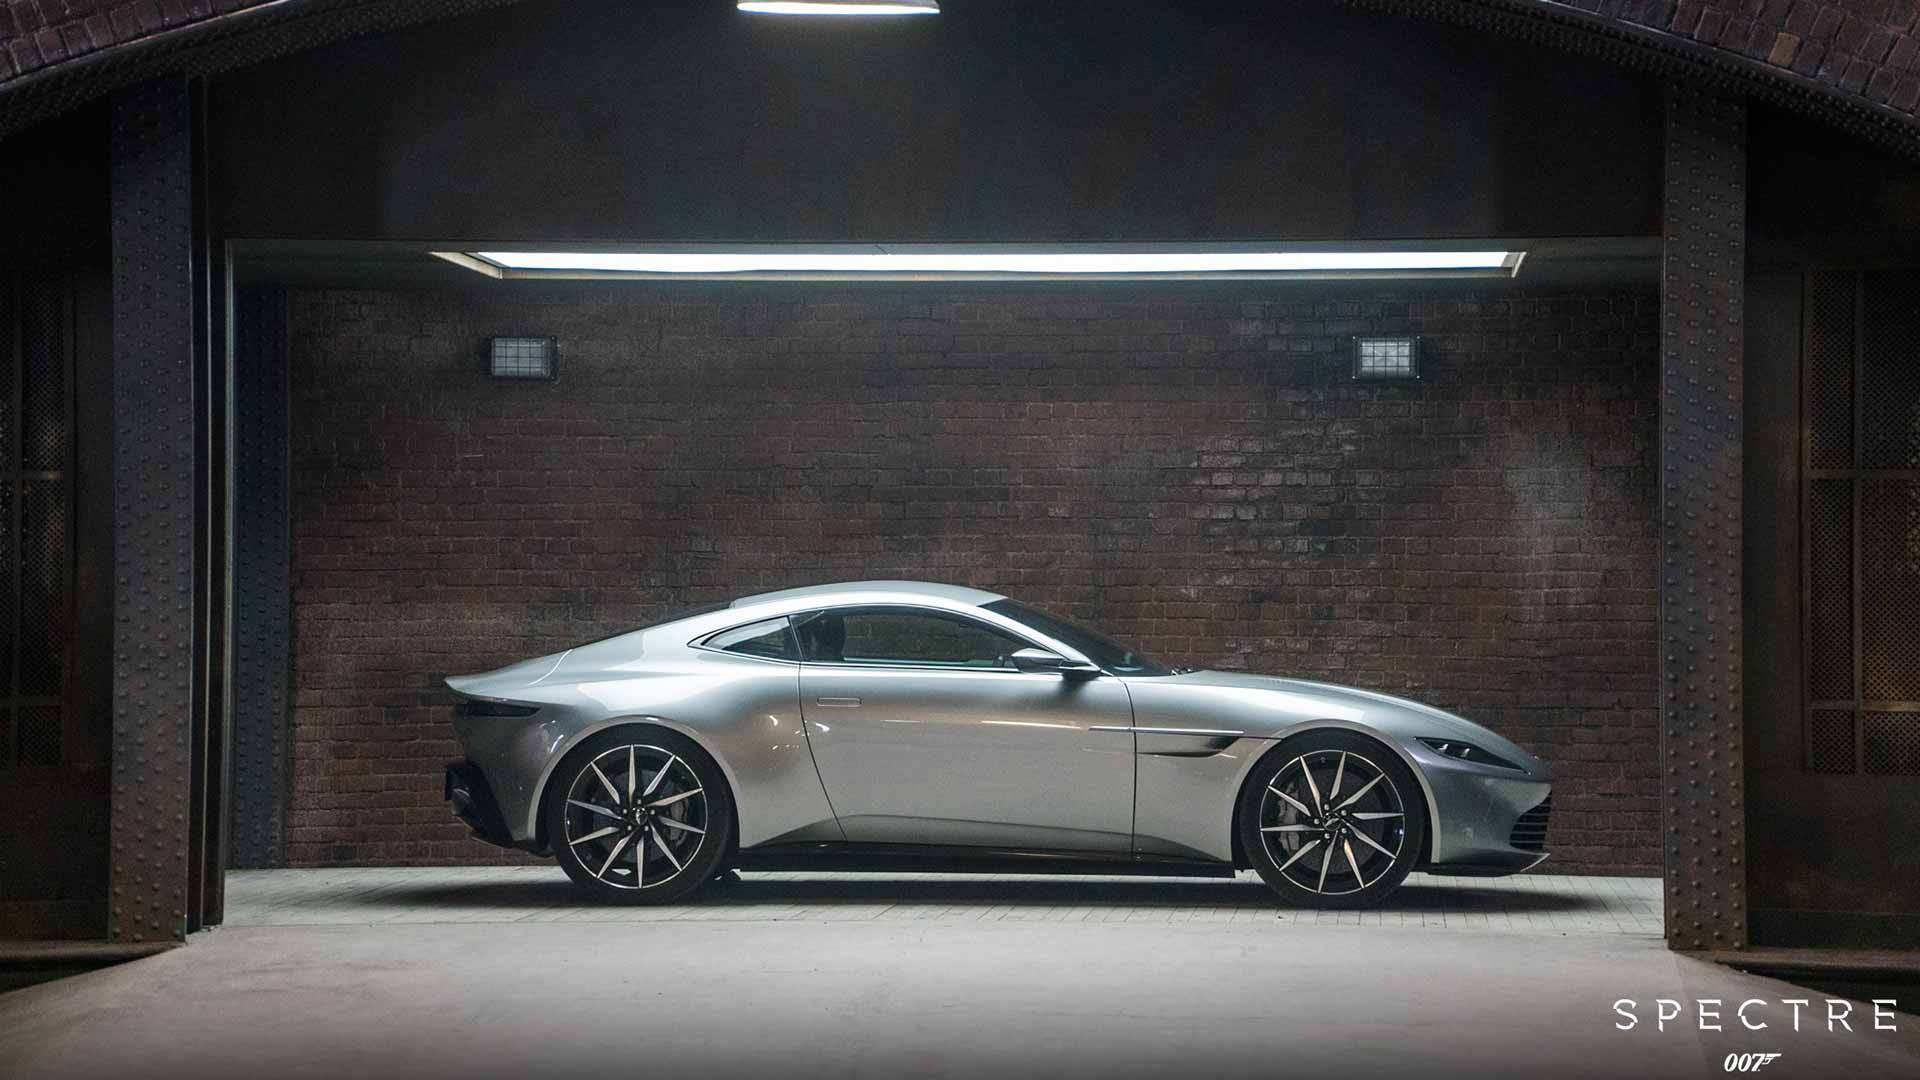 James Bond Spectre - Aston Martin Brands Movies